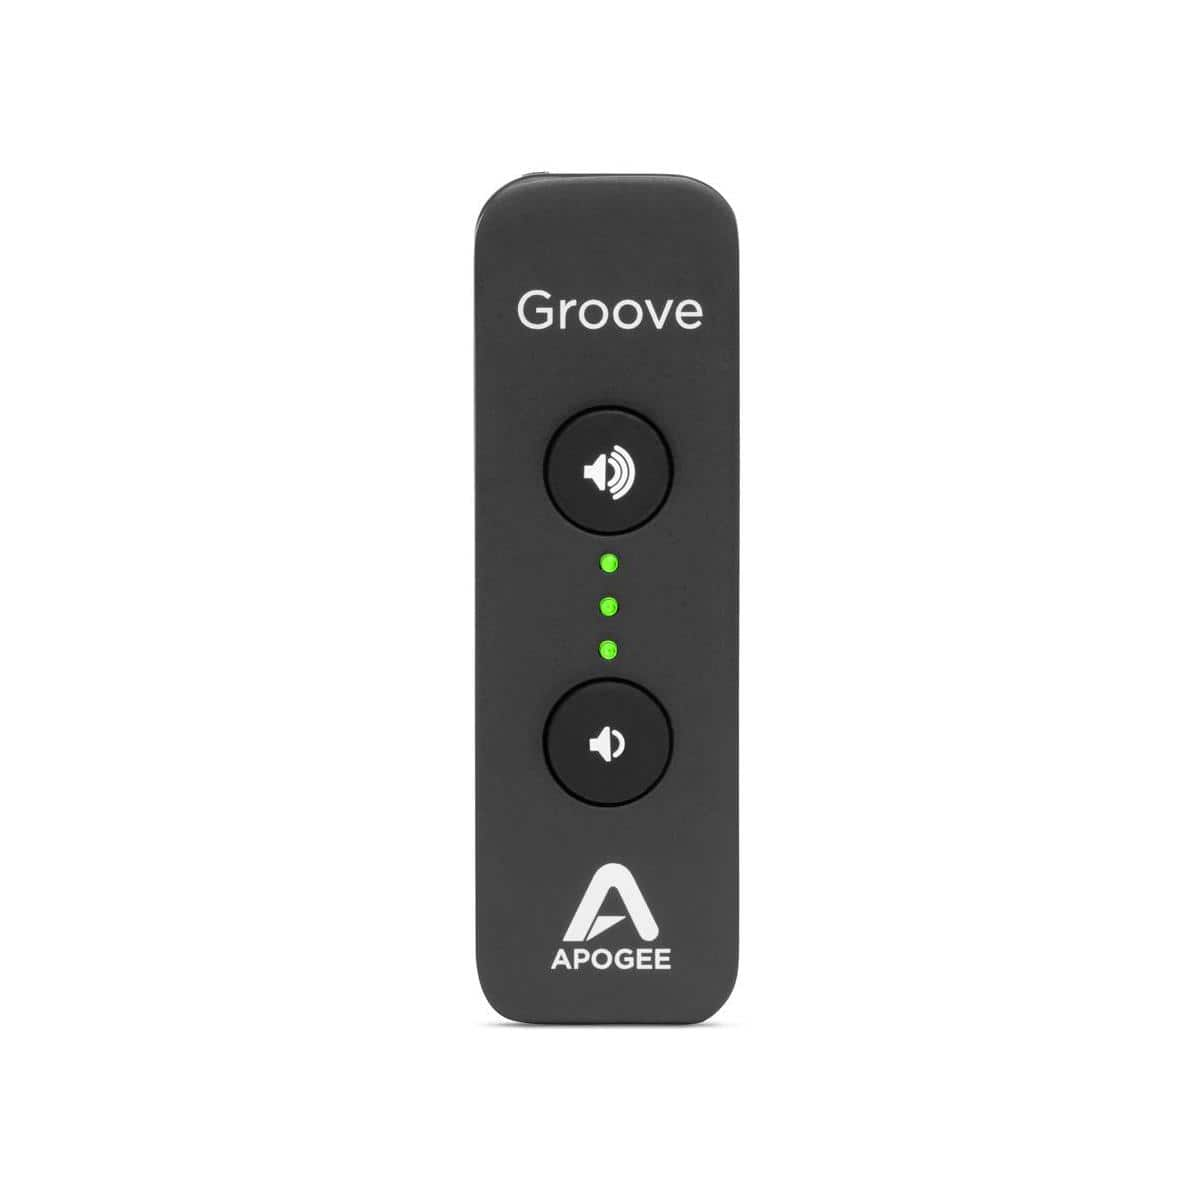 Apogee Groove Portable USB DAC & Amp $210 after $25 rebate + free shipping